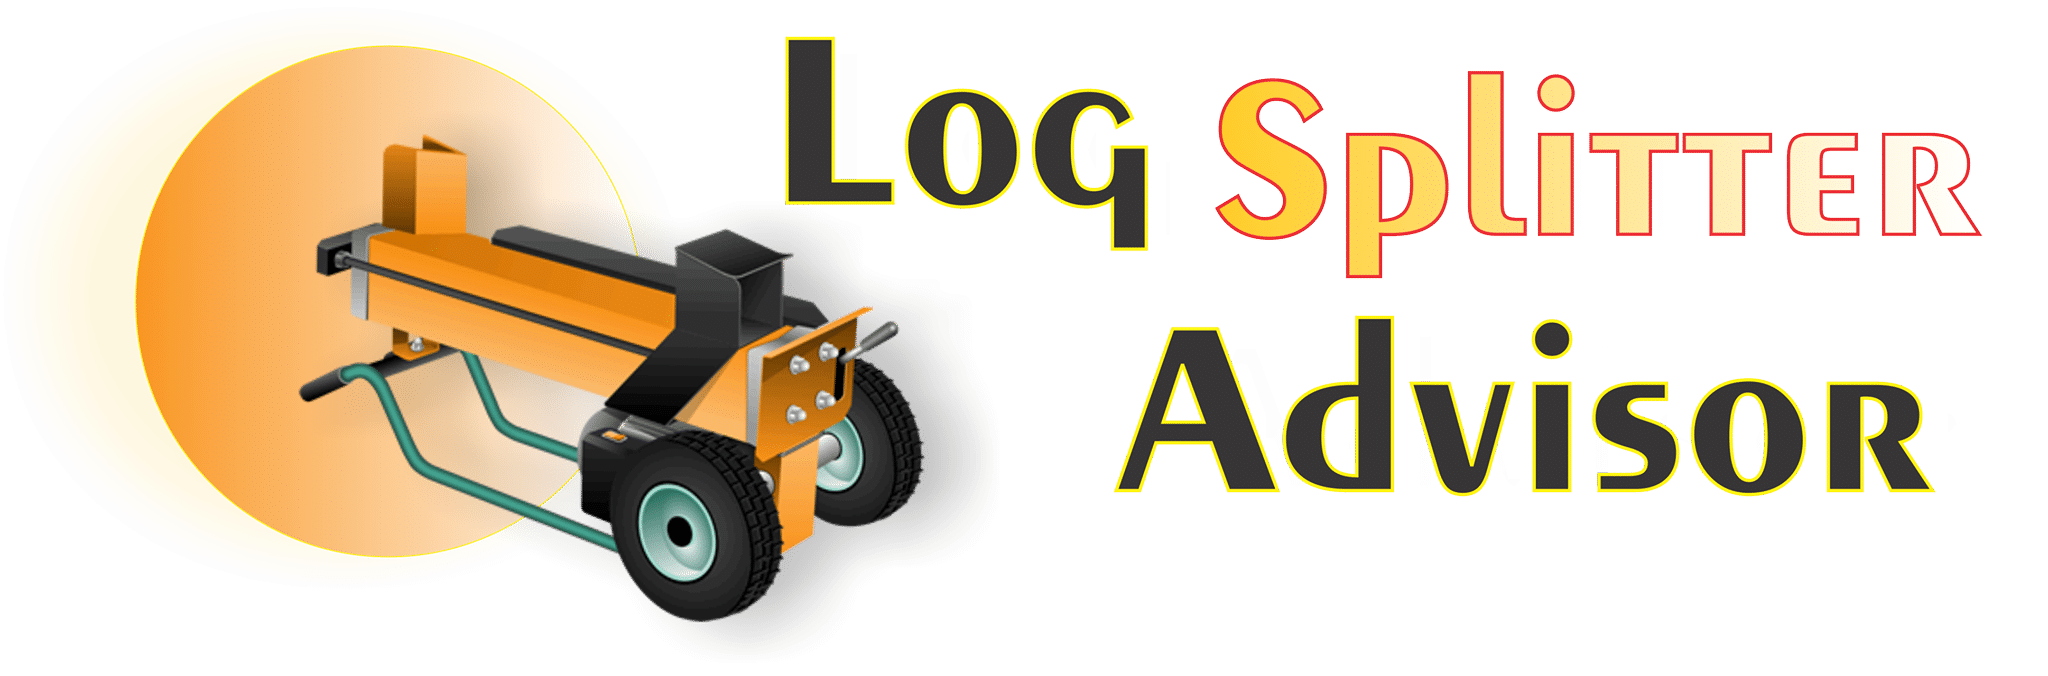 Log Splitter Advisor